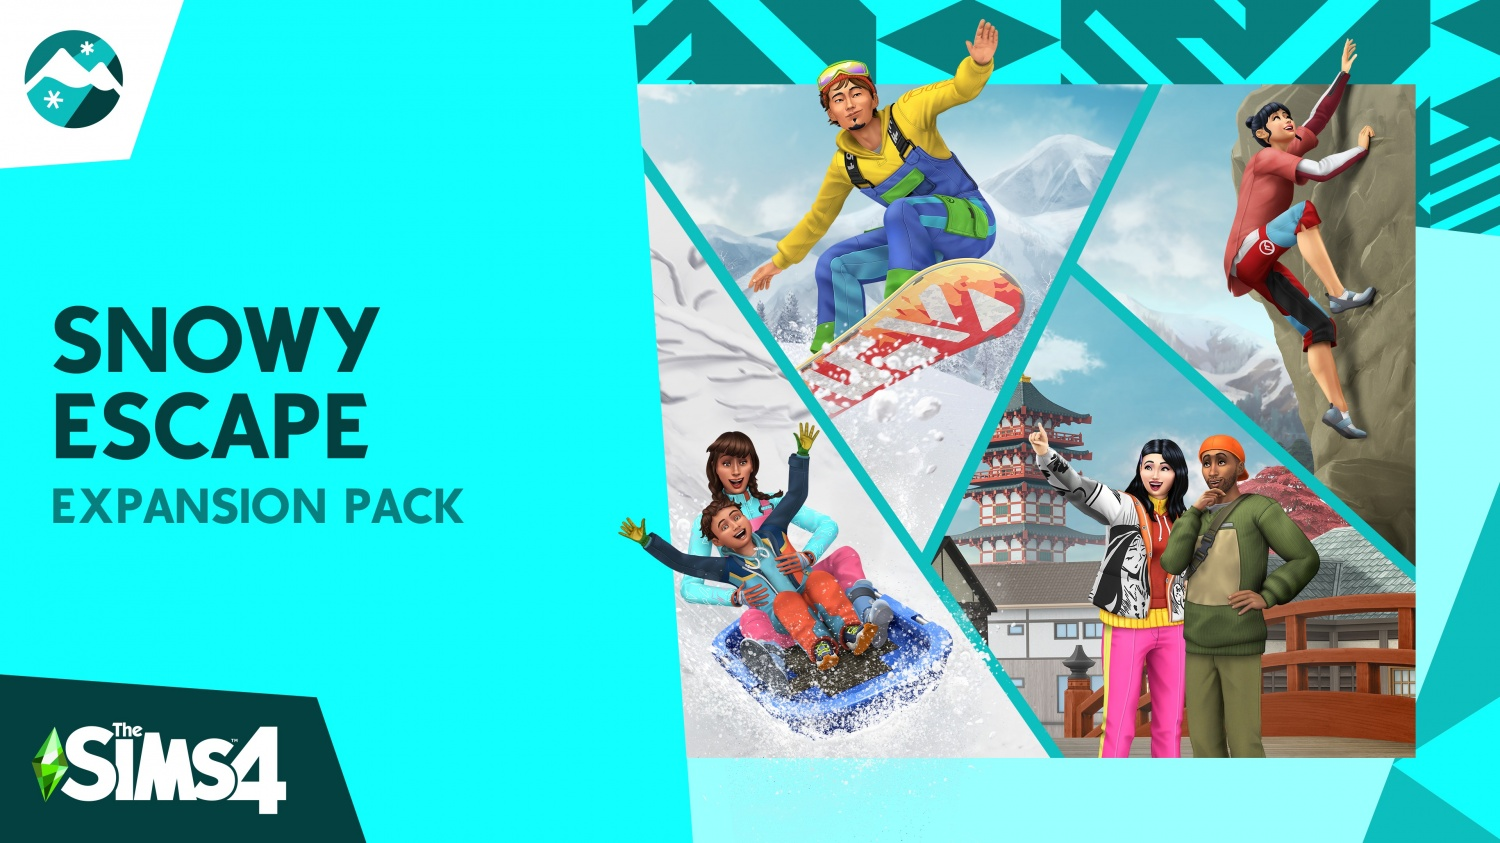 The Sims 4 Expansion Pack: Snowy Escape